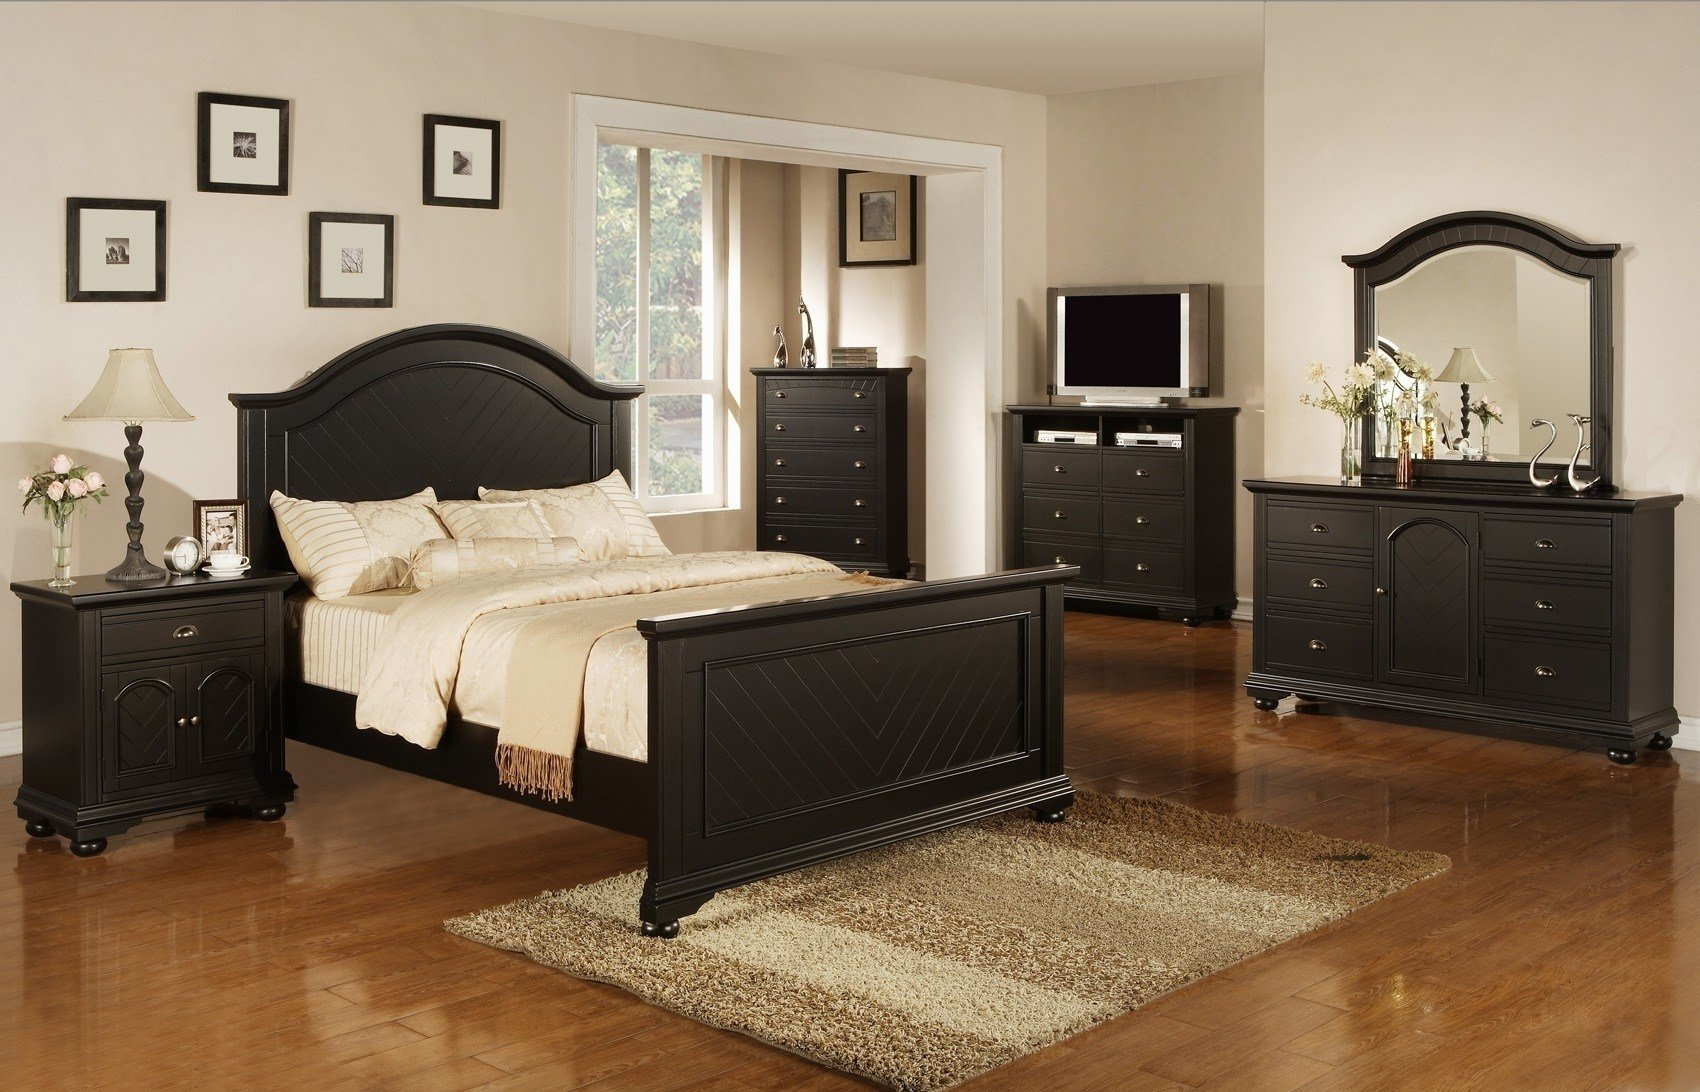 Best 10 Cool Queen Bedroom Sets Under 500 Collections Bedroom With Pictures